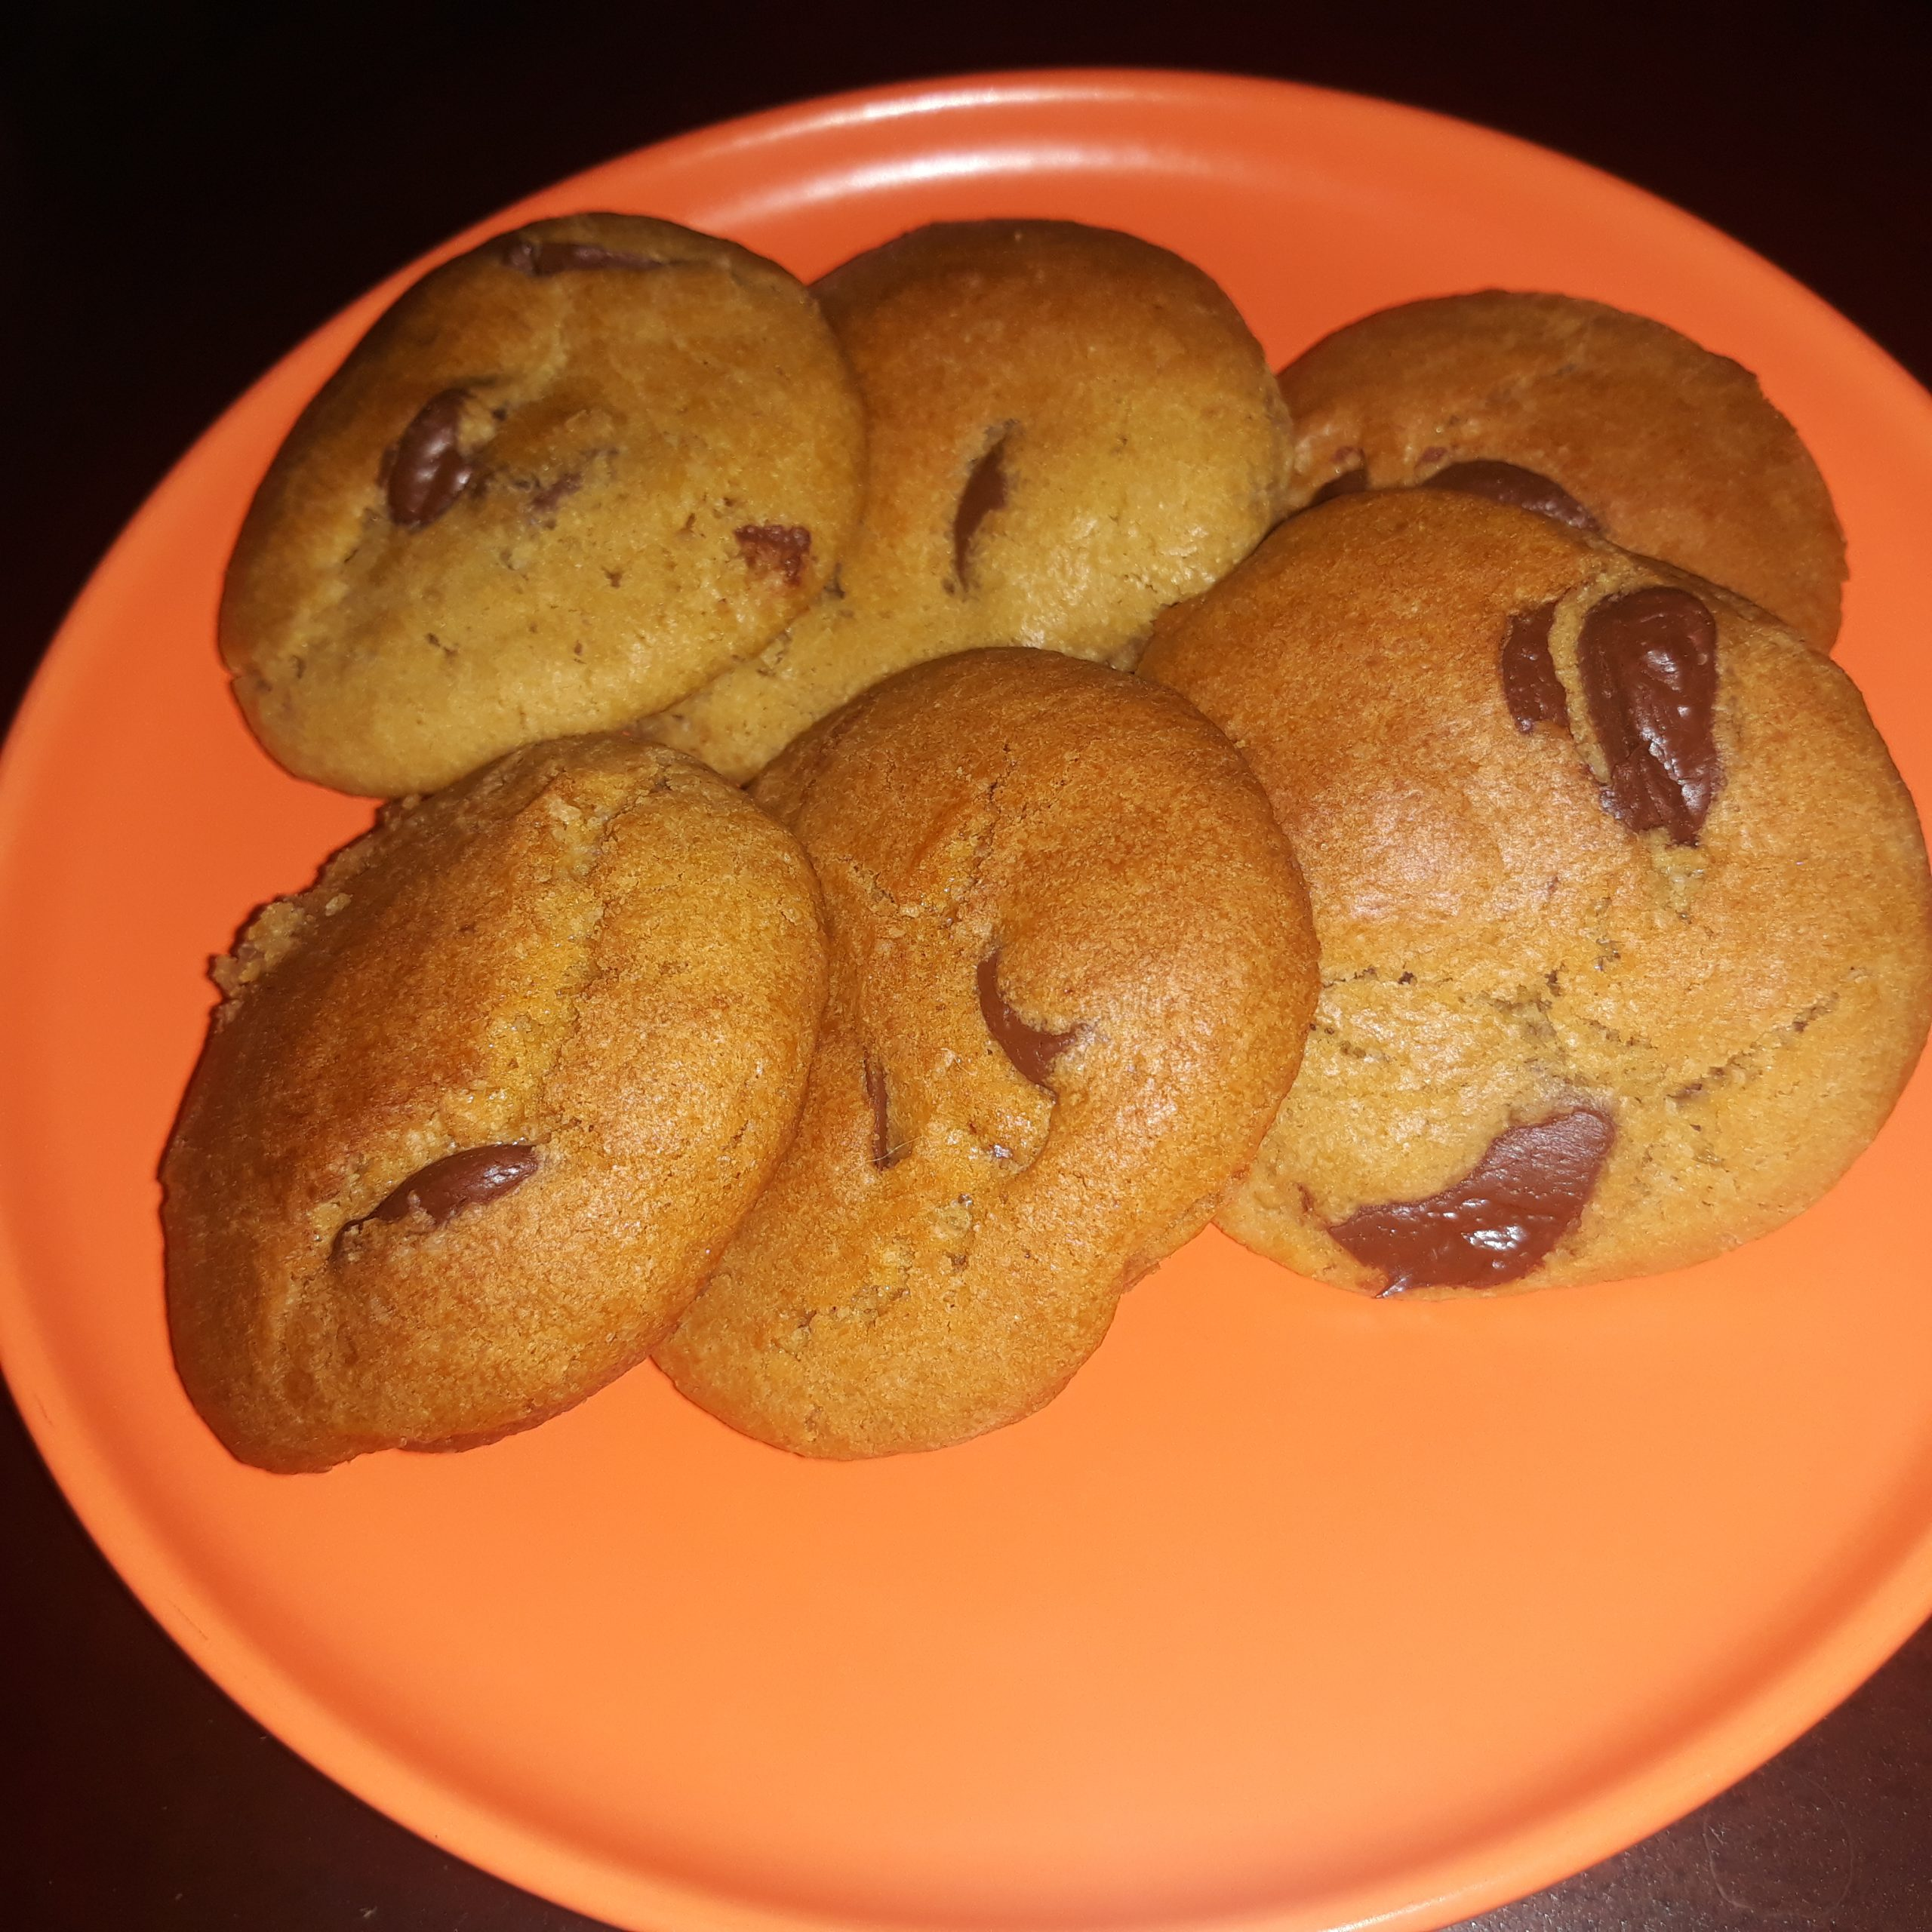 Six pieces of chocolate chip cookies on an orange plate.